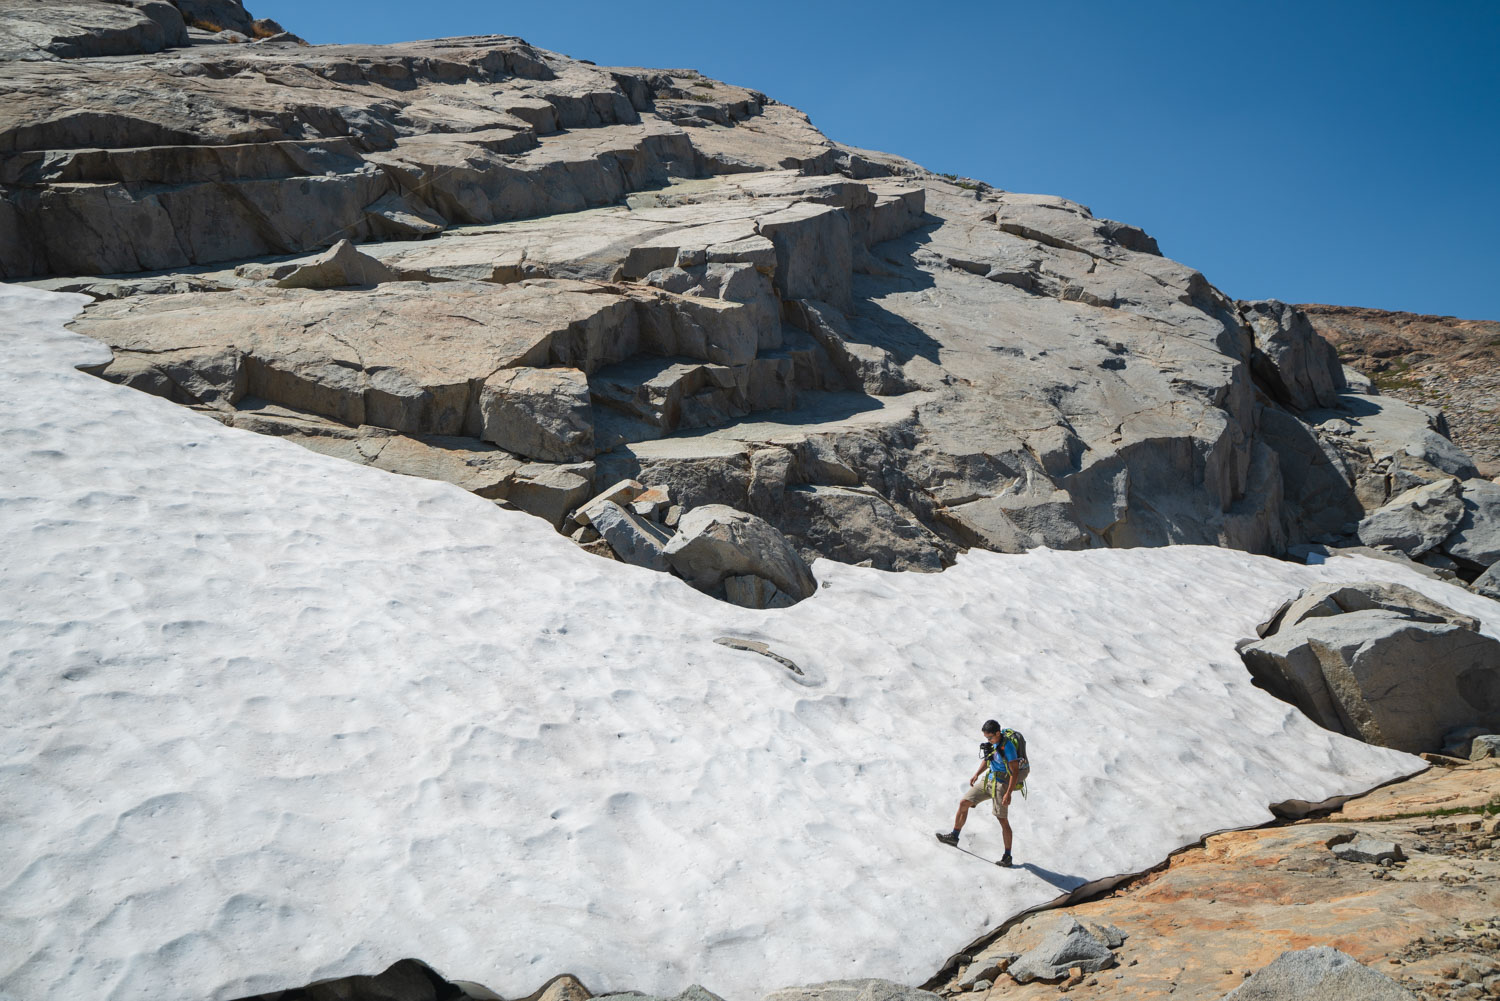 Tahoe backpacking lakes and hikes